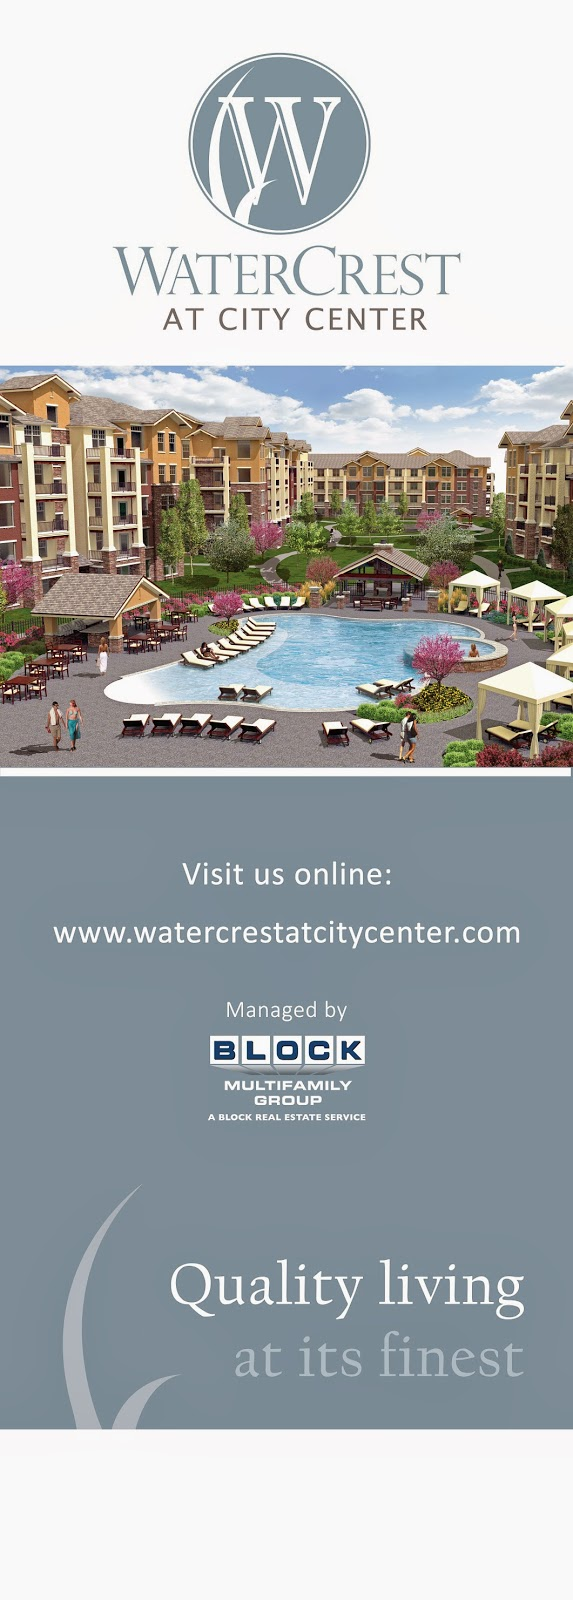 Block Real Estate Services- WaterCrest at City Center